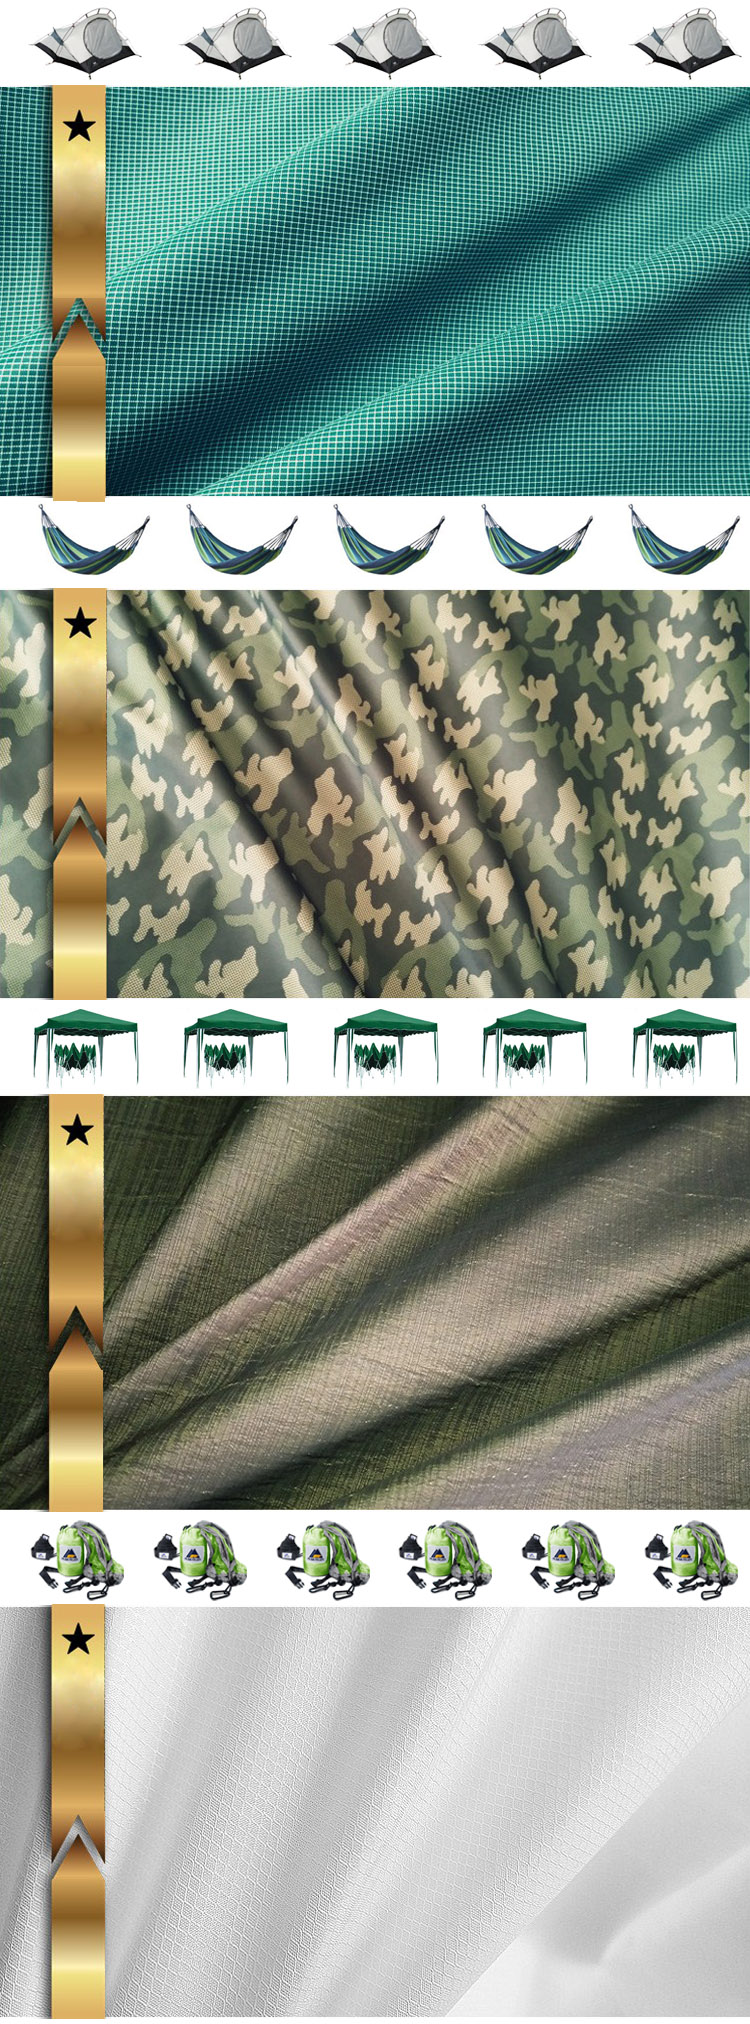 Shanghai Lesen Textile 100% nylon Water repellent fabric